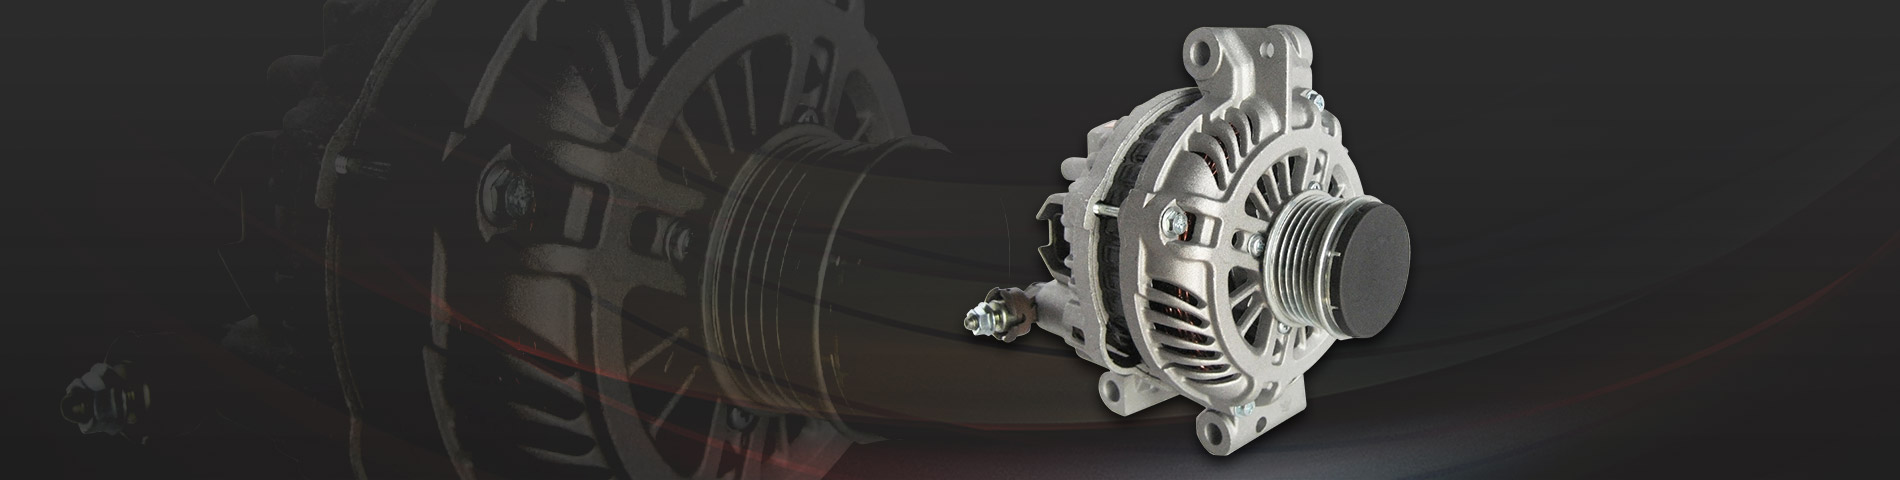 Dah Kee Co., Ltd. An Expert in Manufacturing Alternators, Starters, and Ignition Distributors